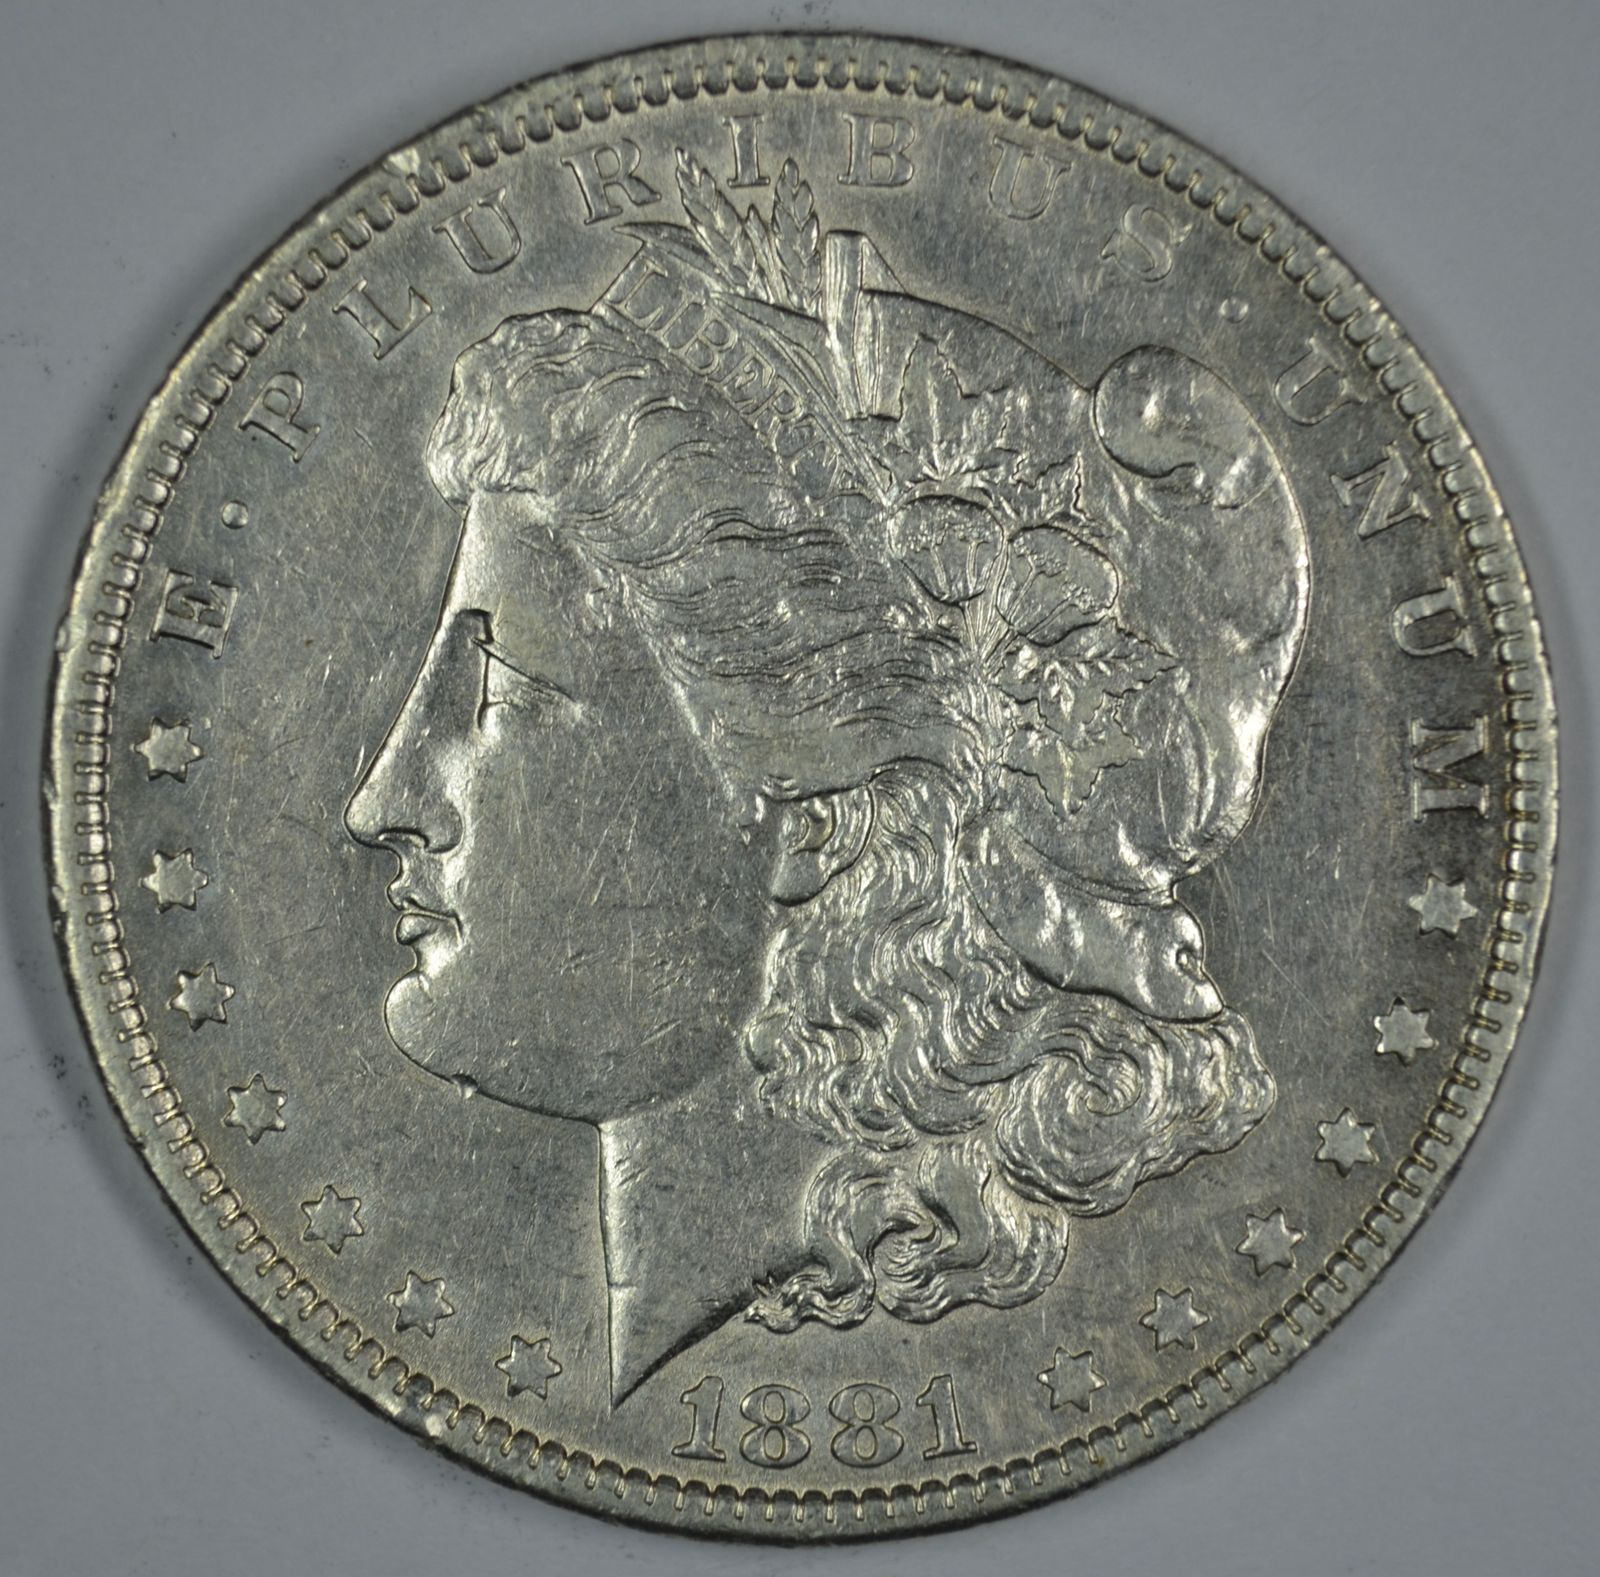 Primary image for 1881 O Morgan circulated silver dollar XF details